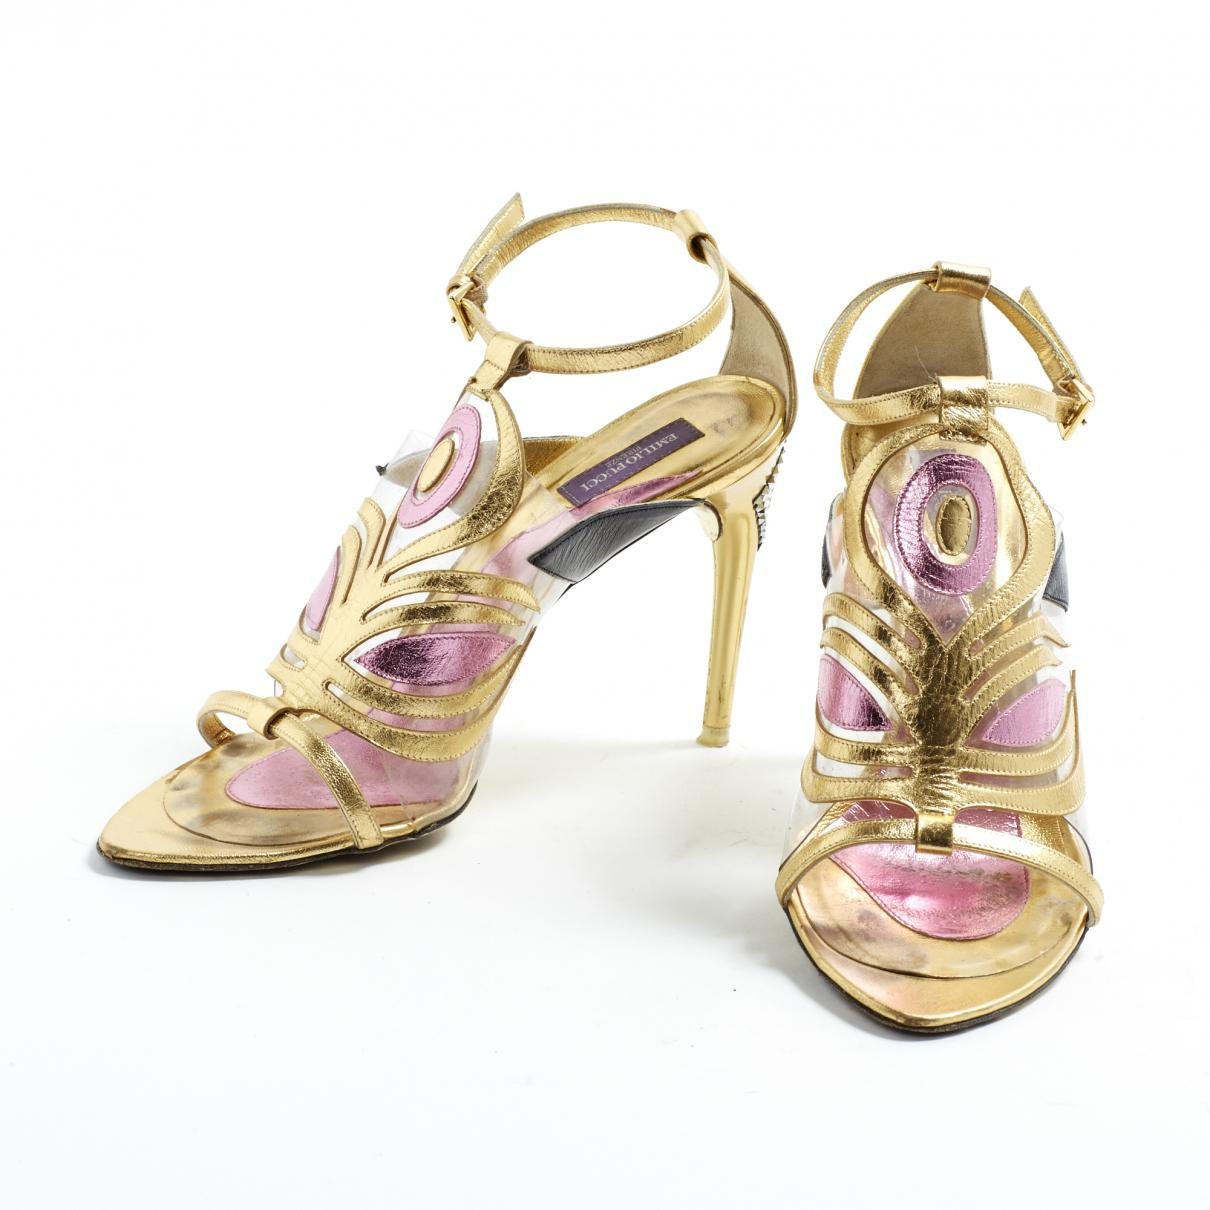 051df5d8234 ... Metallic Gold Leather Sandals - Lyst. View fullscreen